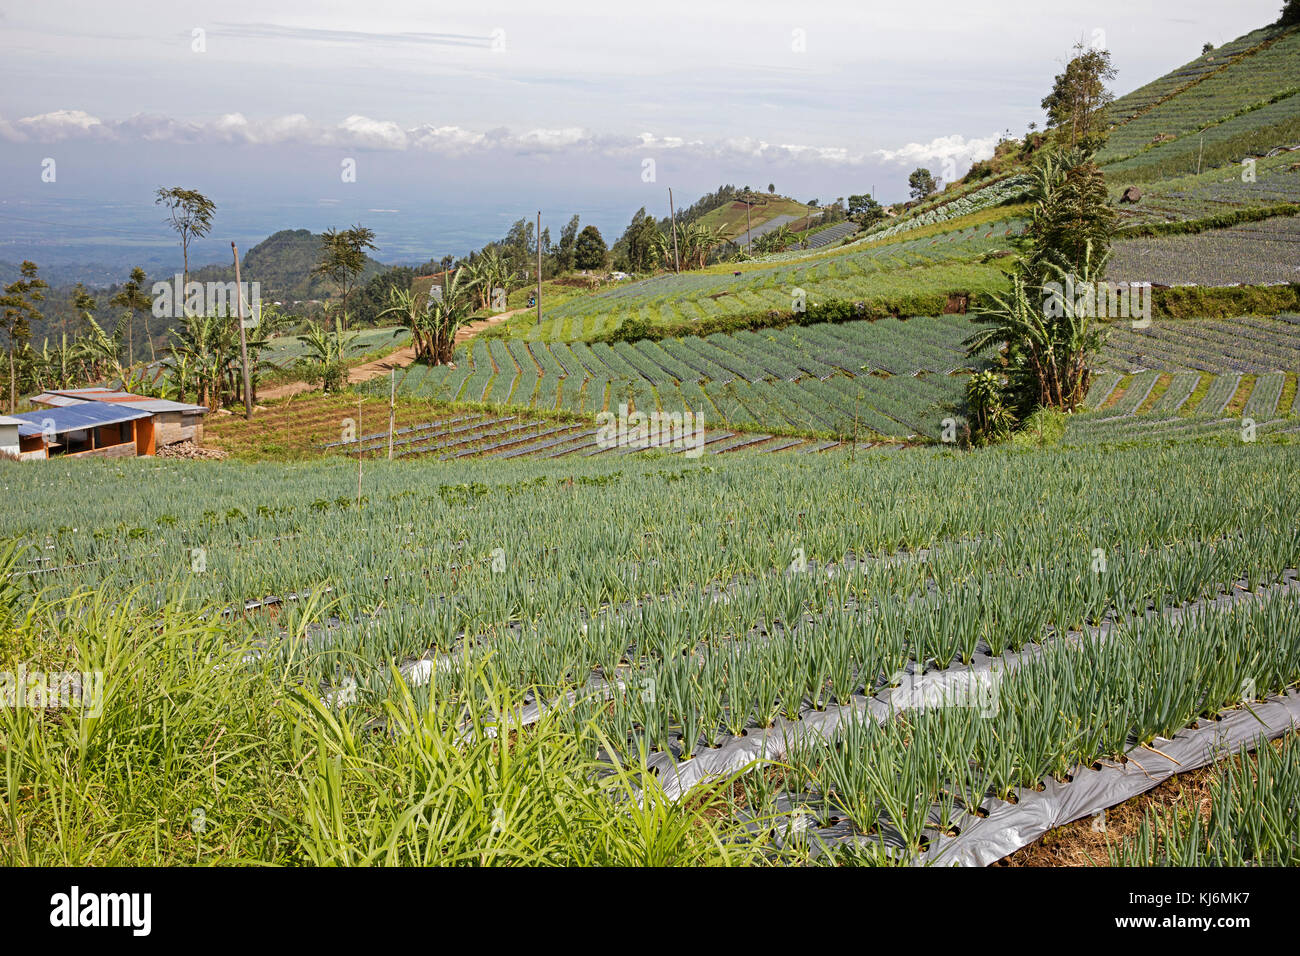 Field with onions on the slopes of Mount Lawu / Gunung Lawu near Solo / Surakarta, Central Java, Indonesia - Stock Image